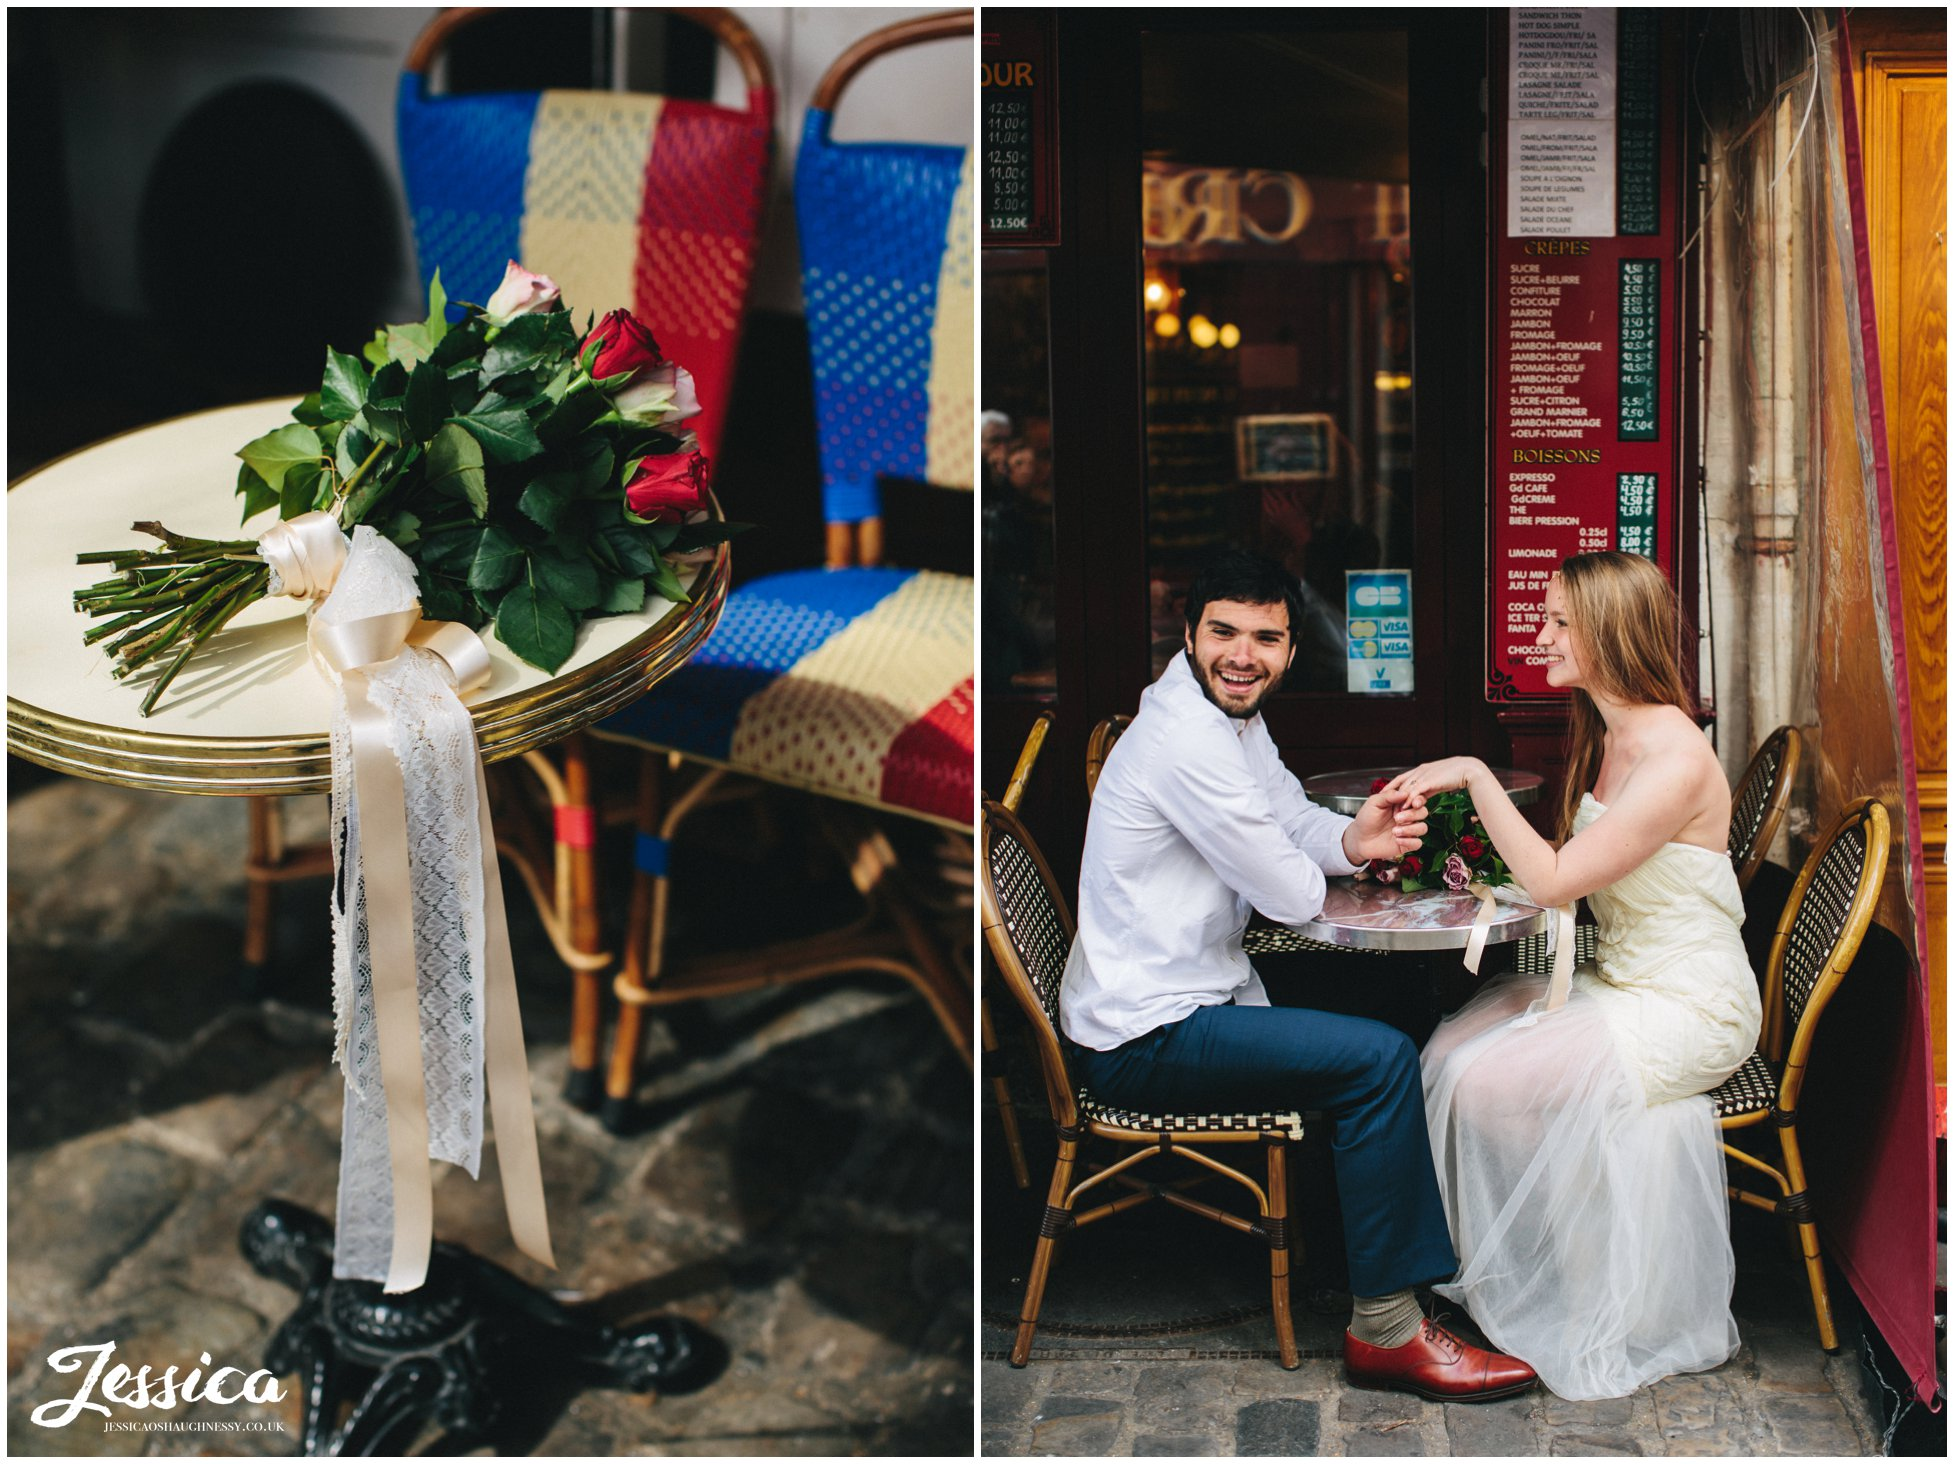 Newly Wed's sitting outside a cafe in mont marte, paris